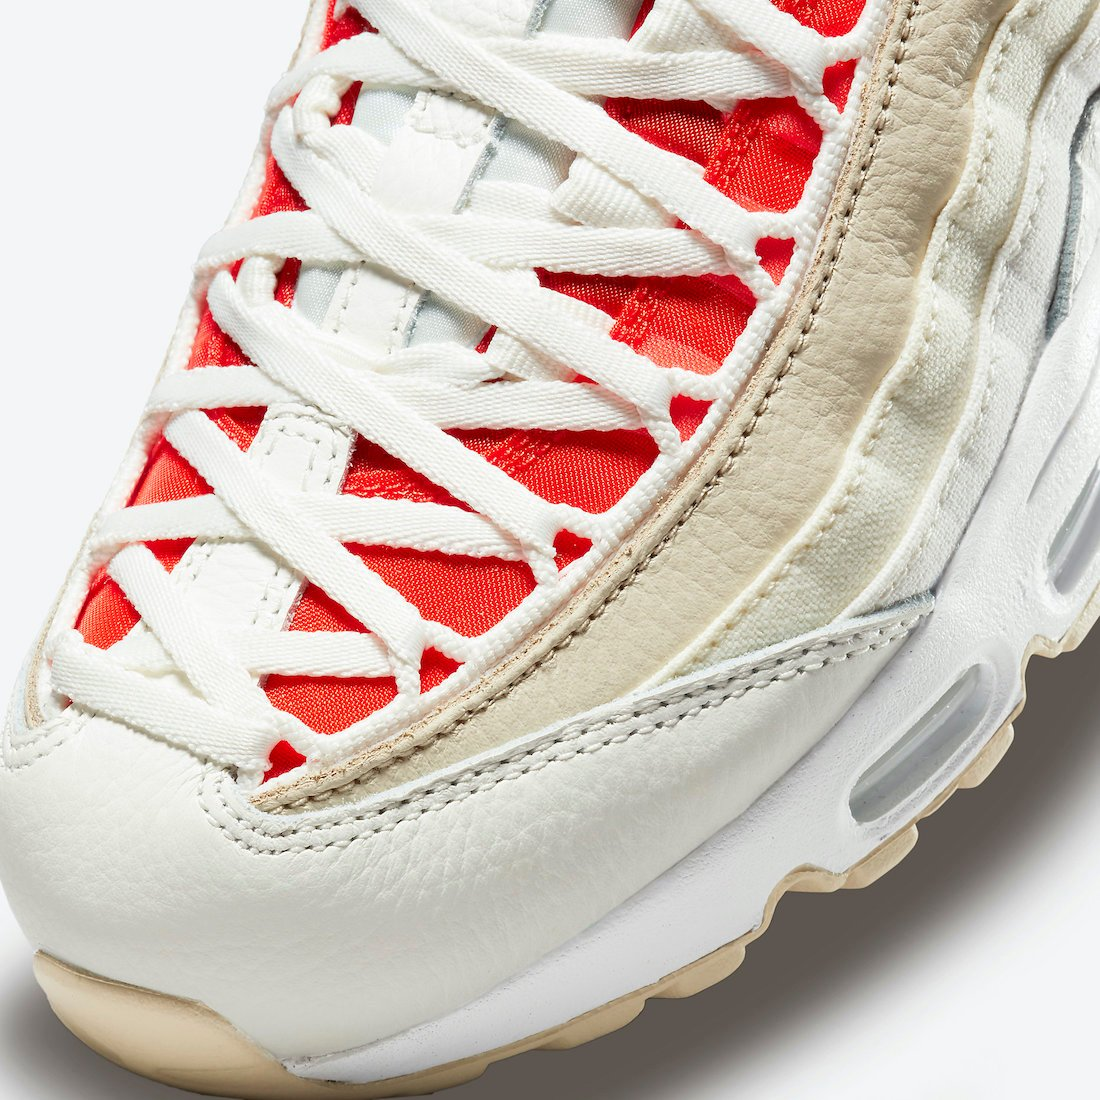 Nike Air Max 95 Sail Chile Red Coconut Milk DJ6903-100 Release Date Info